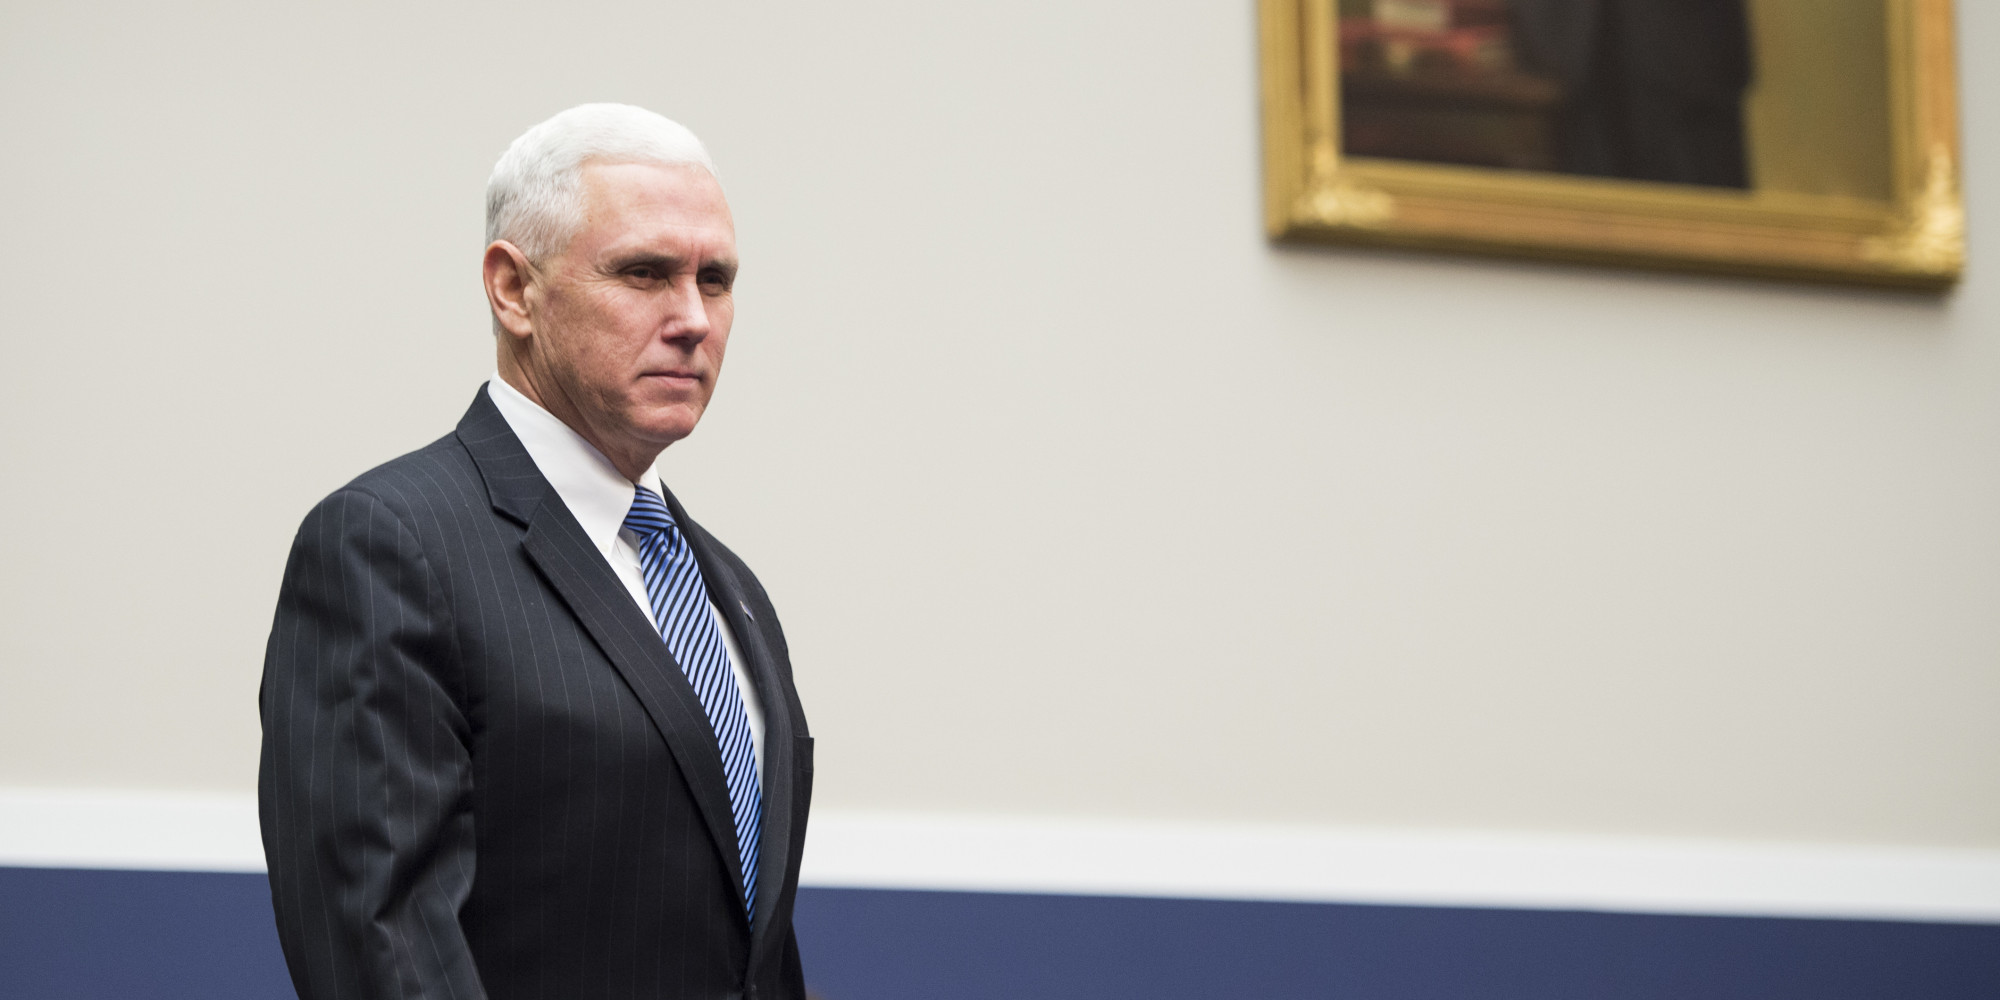 Mike Pence Dodges Criticism By Calling Critics Intolerant That Dog Won T Hunt Huffpost